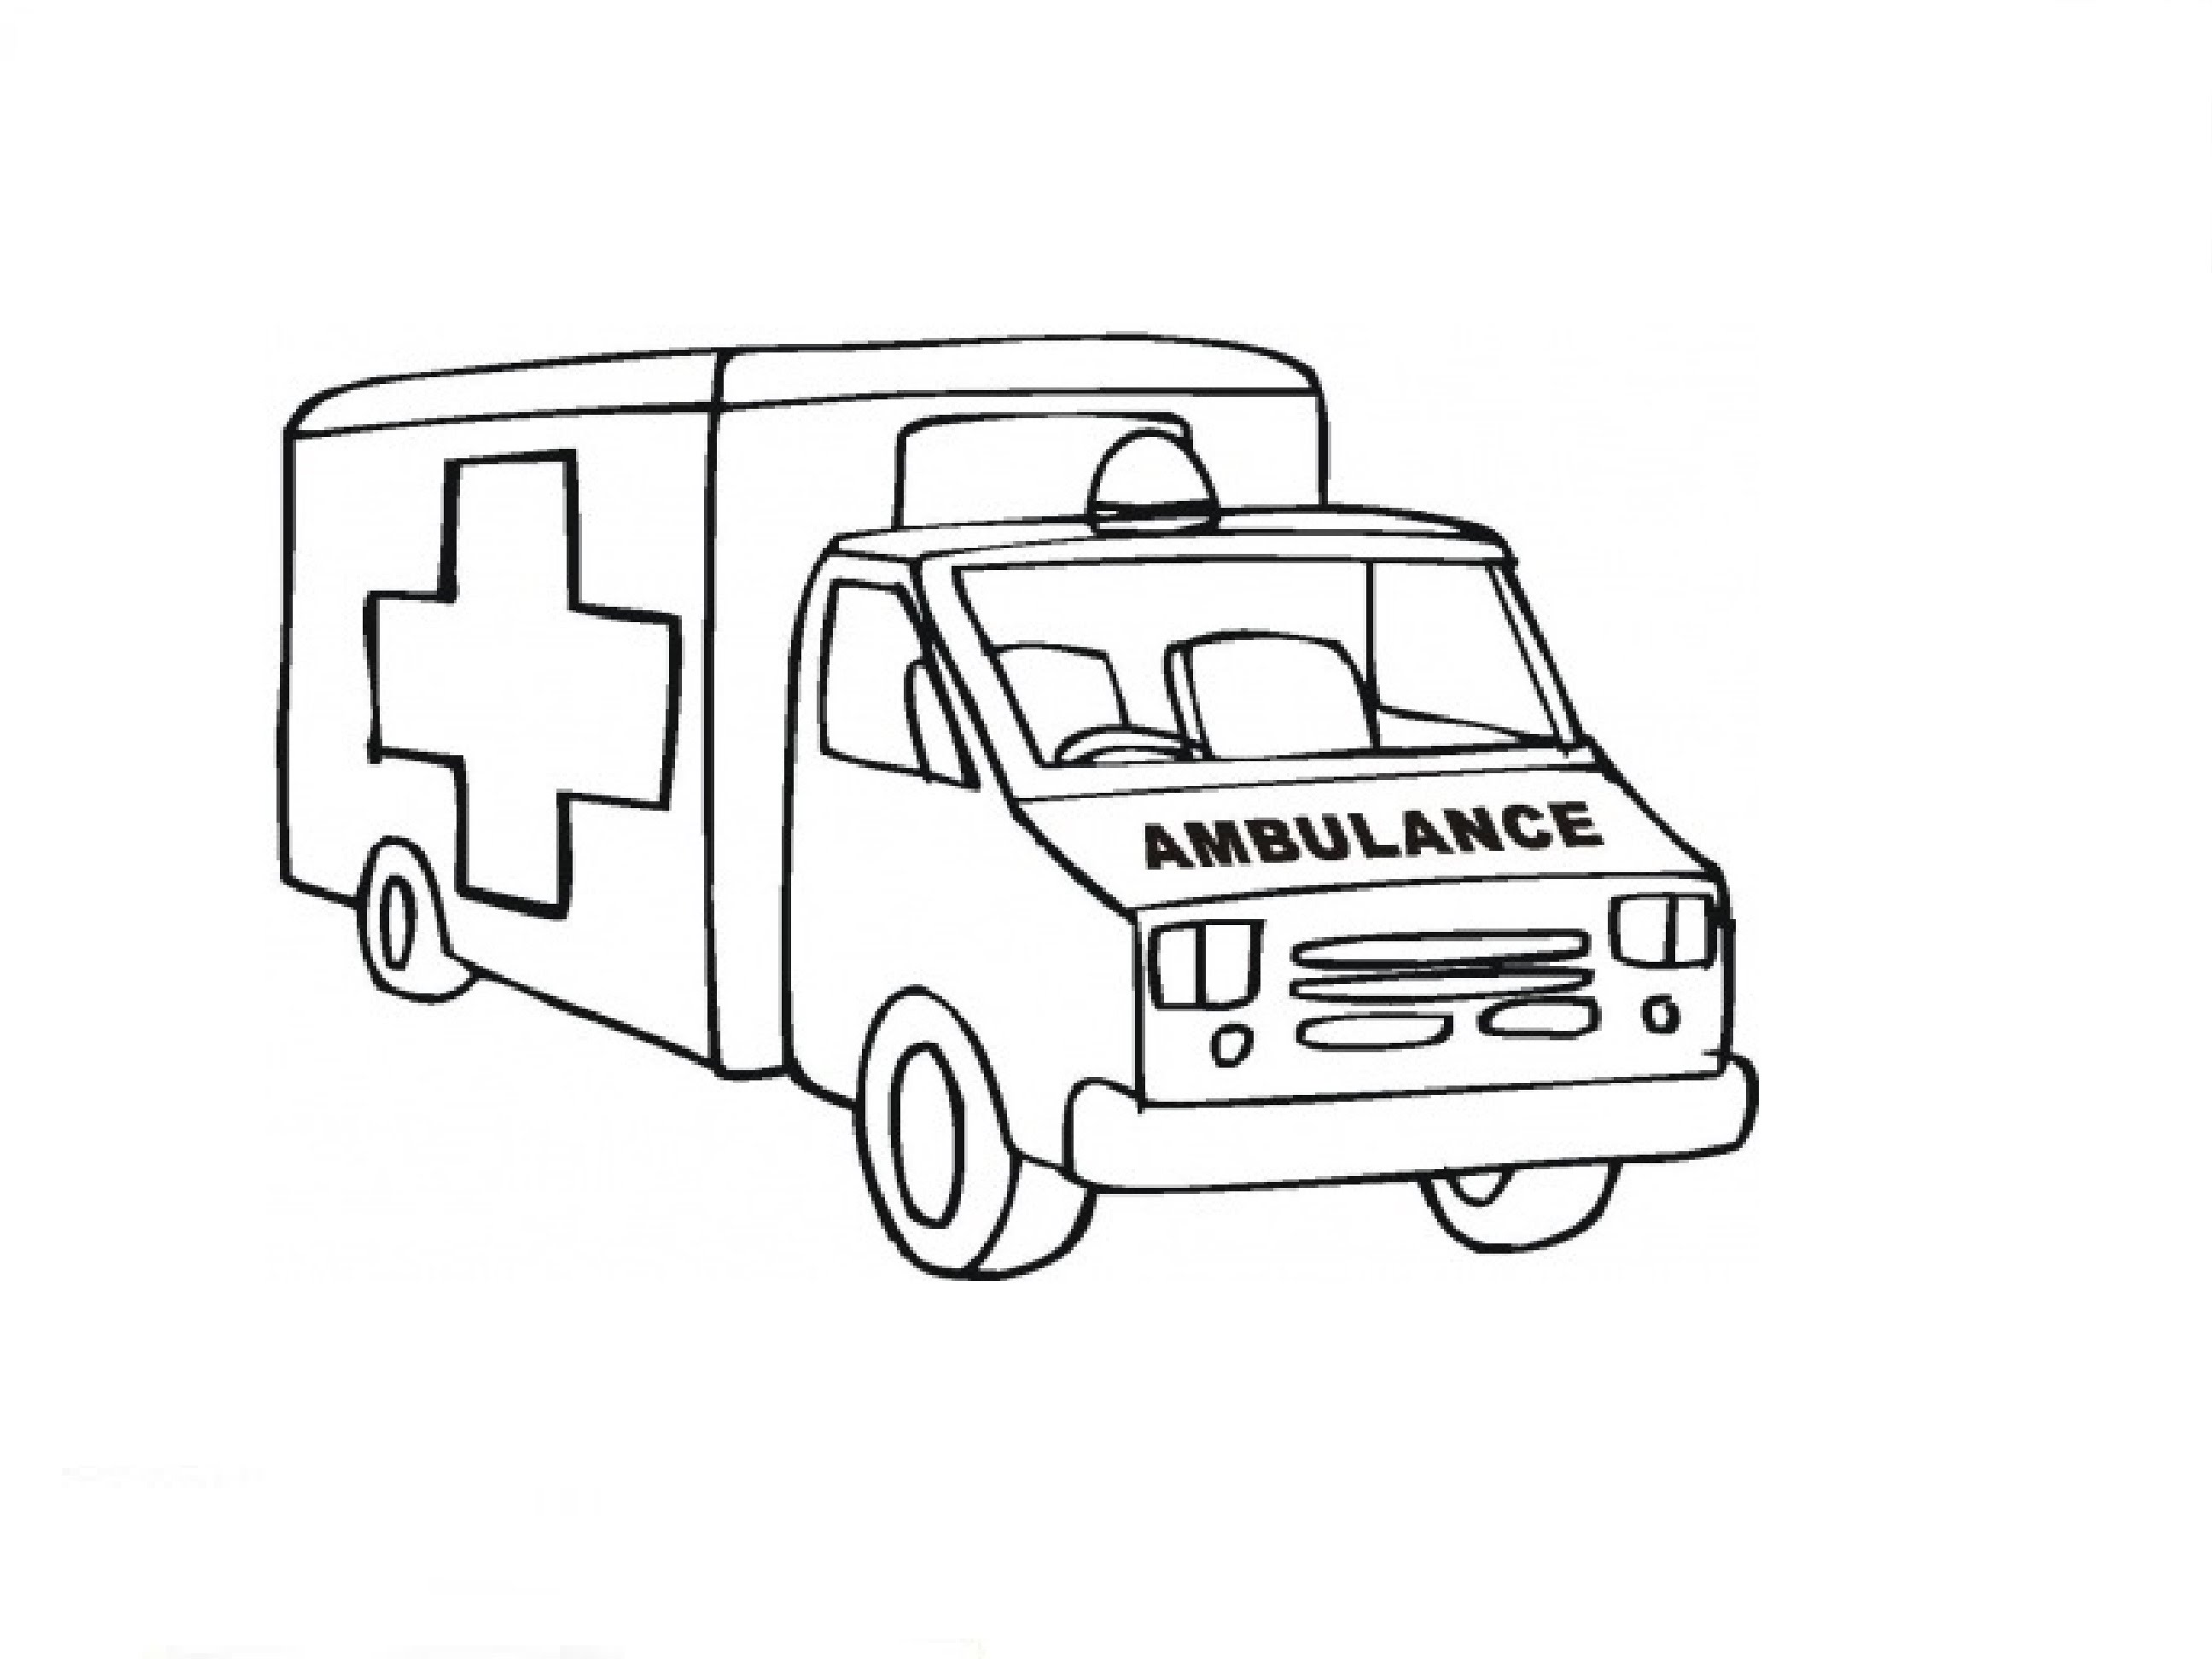 2592x1944 How To Draw An Ambulance Car